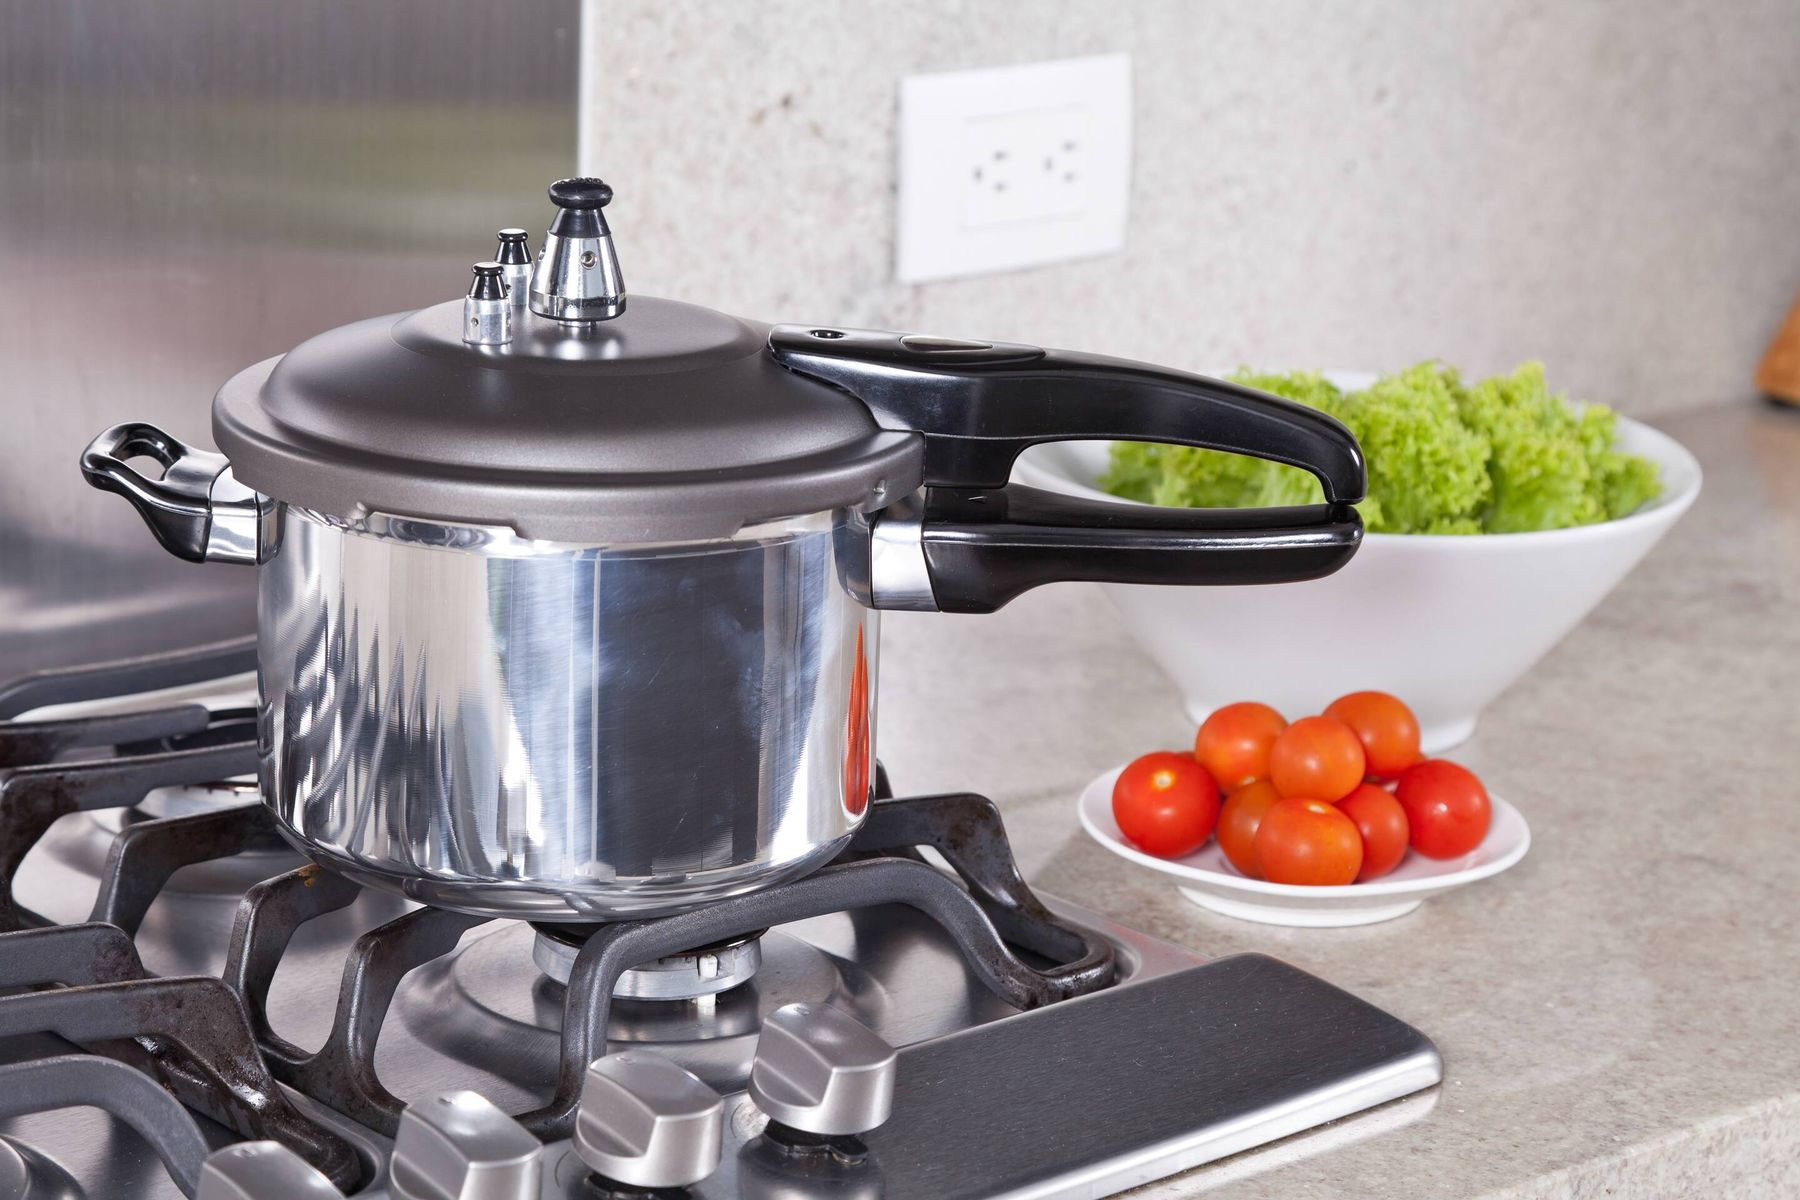 Blackened Pressure Cooker Bottom Giving You the Blues? Try These Tips!